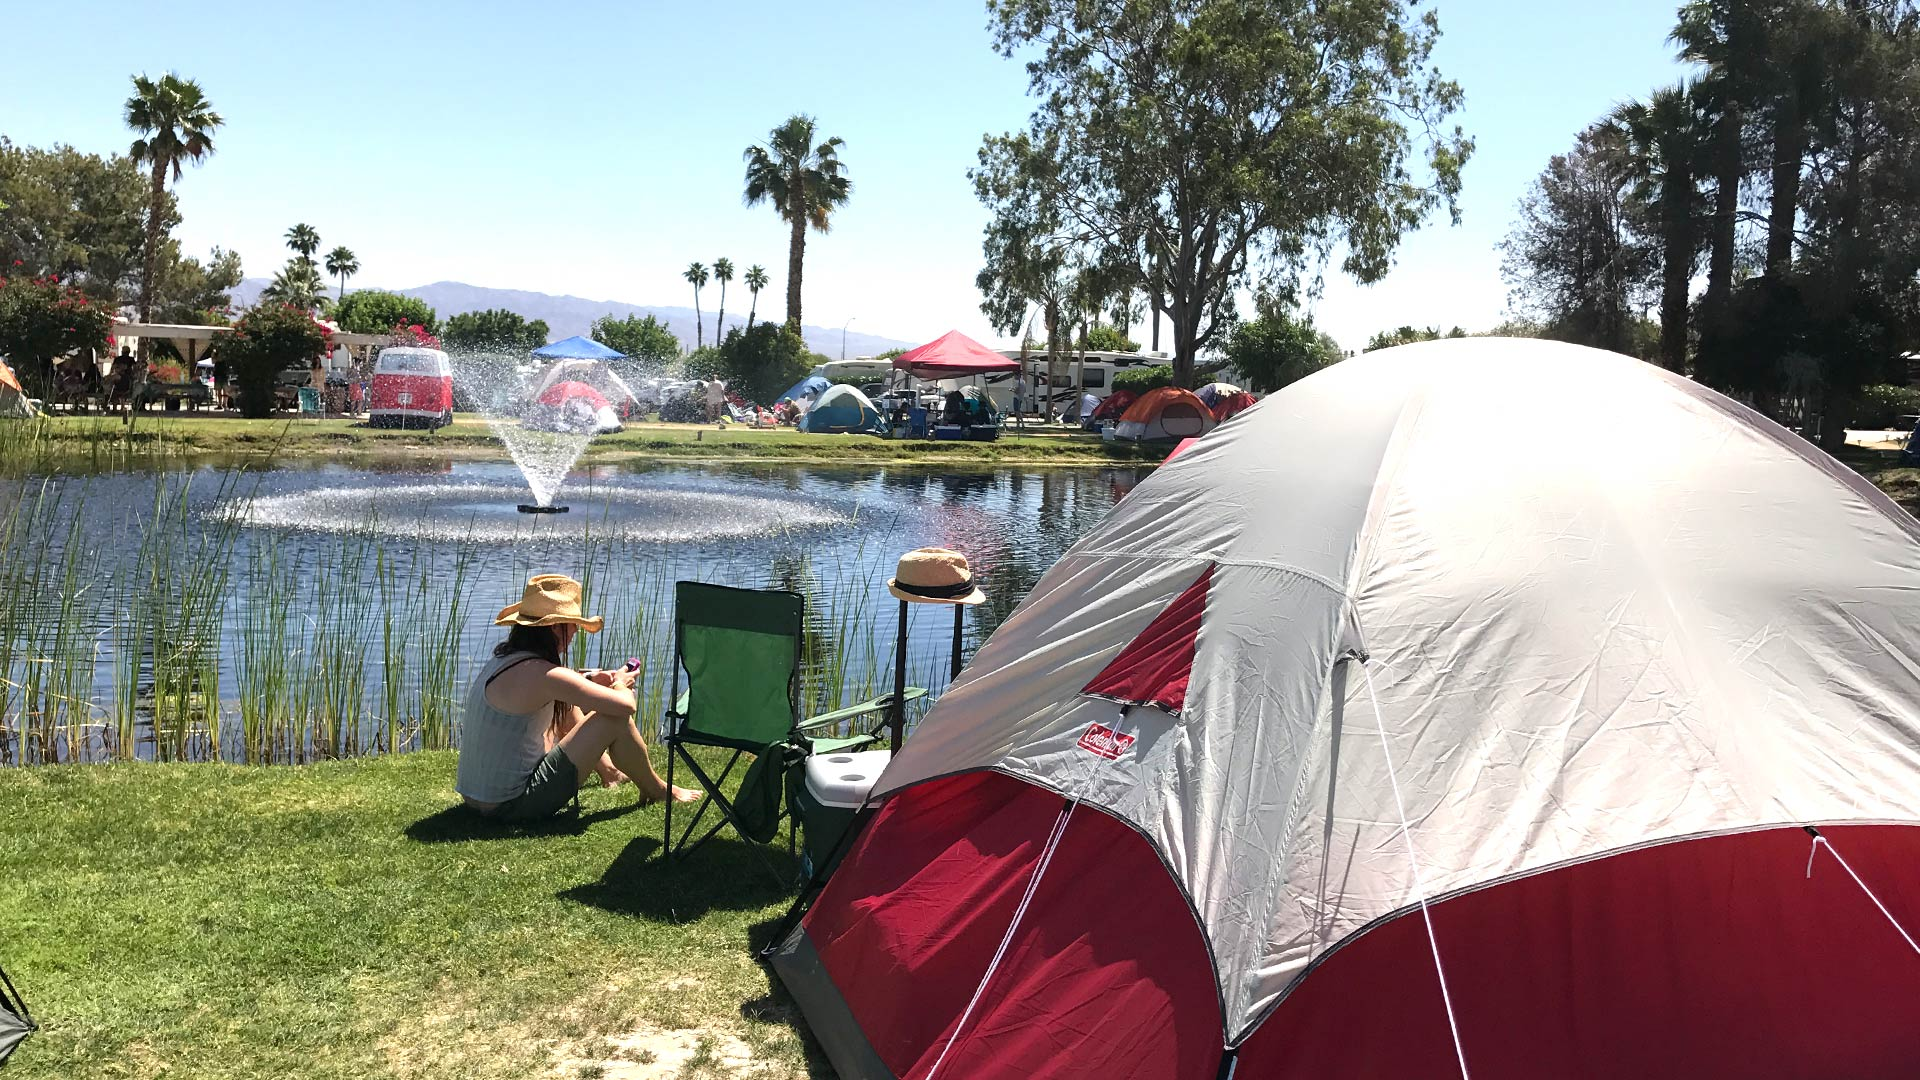 tent camping near the pond